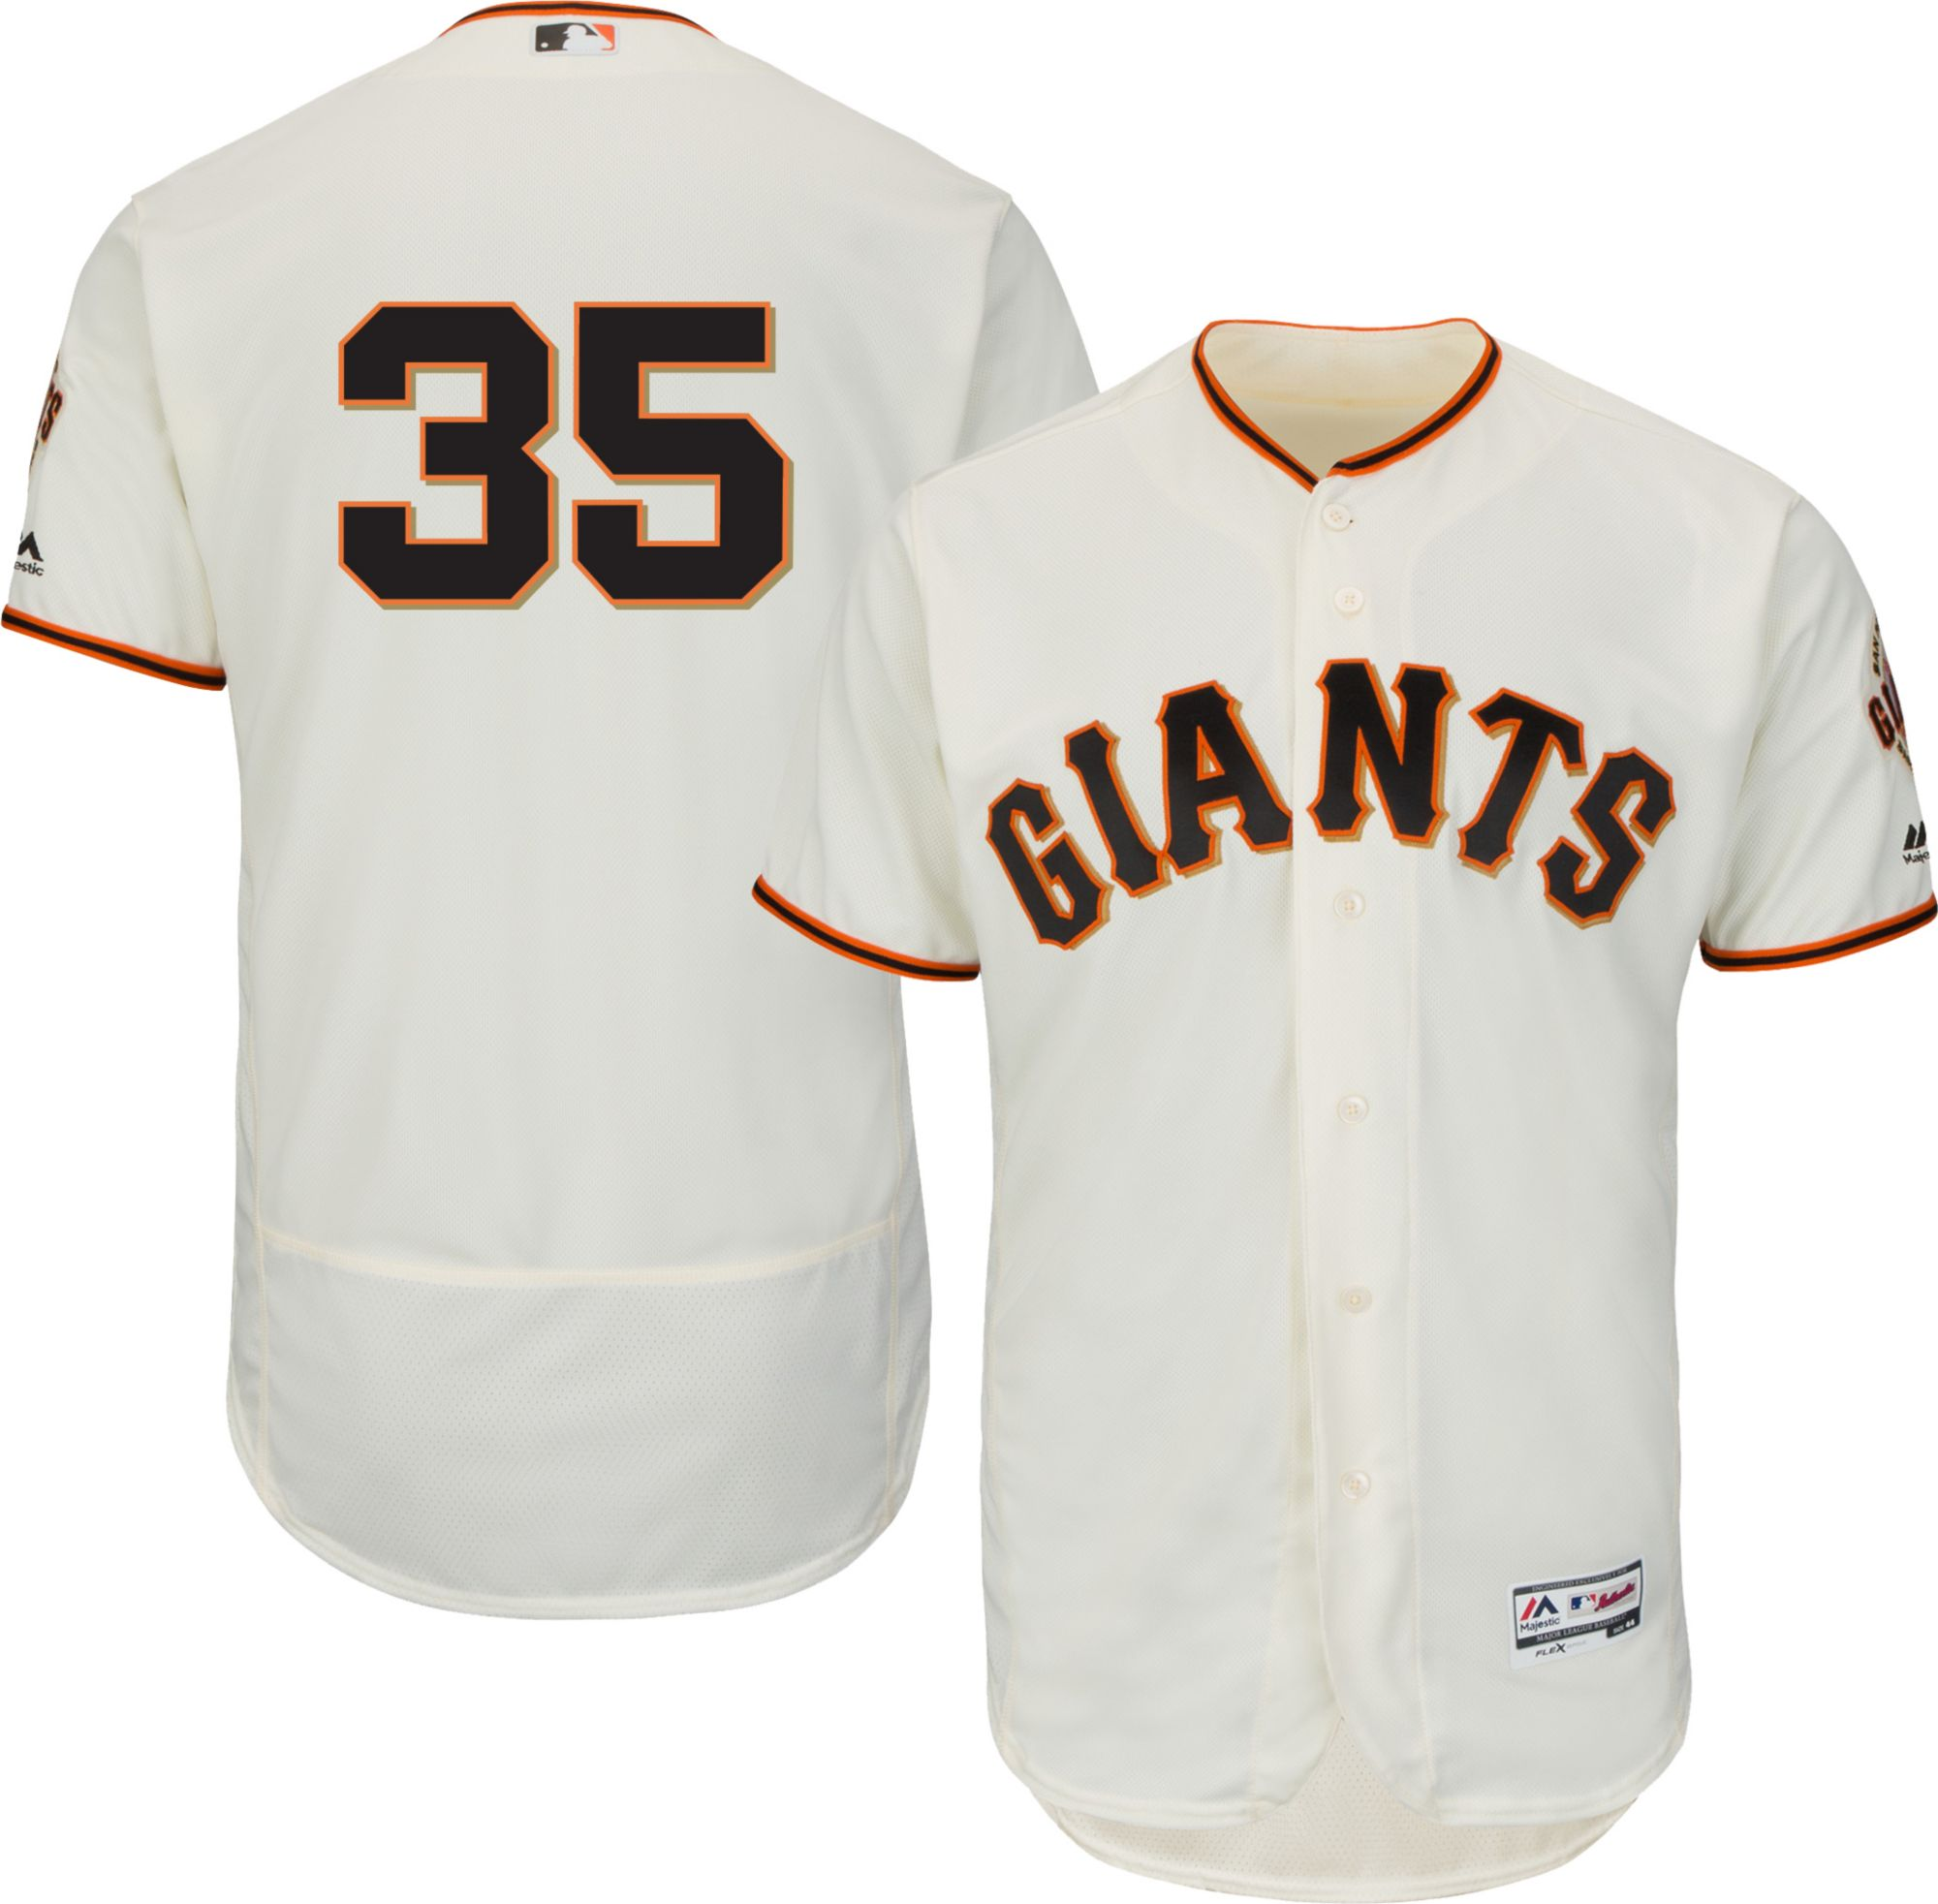 63ac774c Majestic Men's Authentic San Francisco Giants Brandon Crawford #35 ...